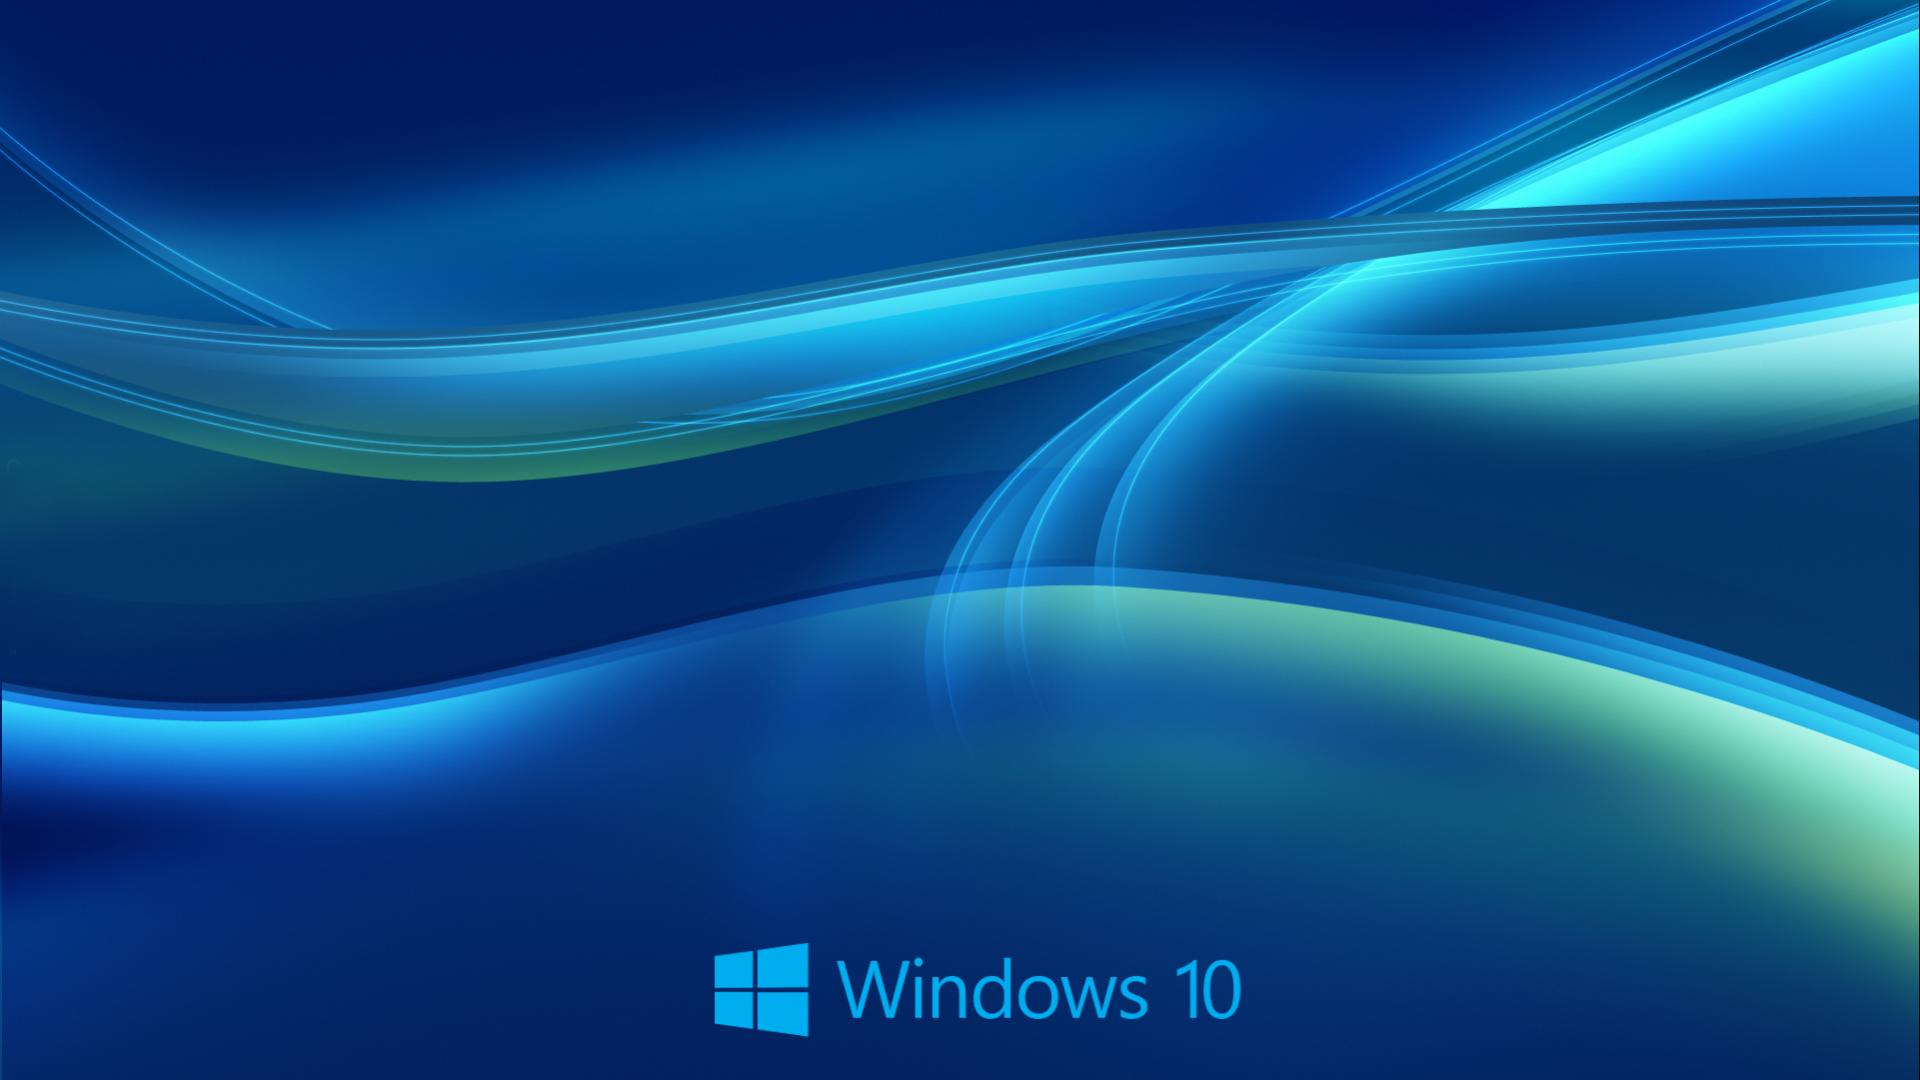 48 Red Windows 10 Wallpaper Hd On Wallpapersafari